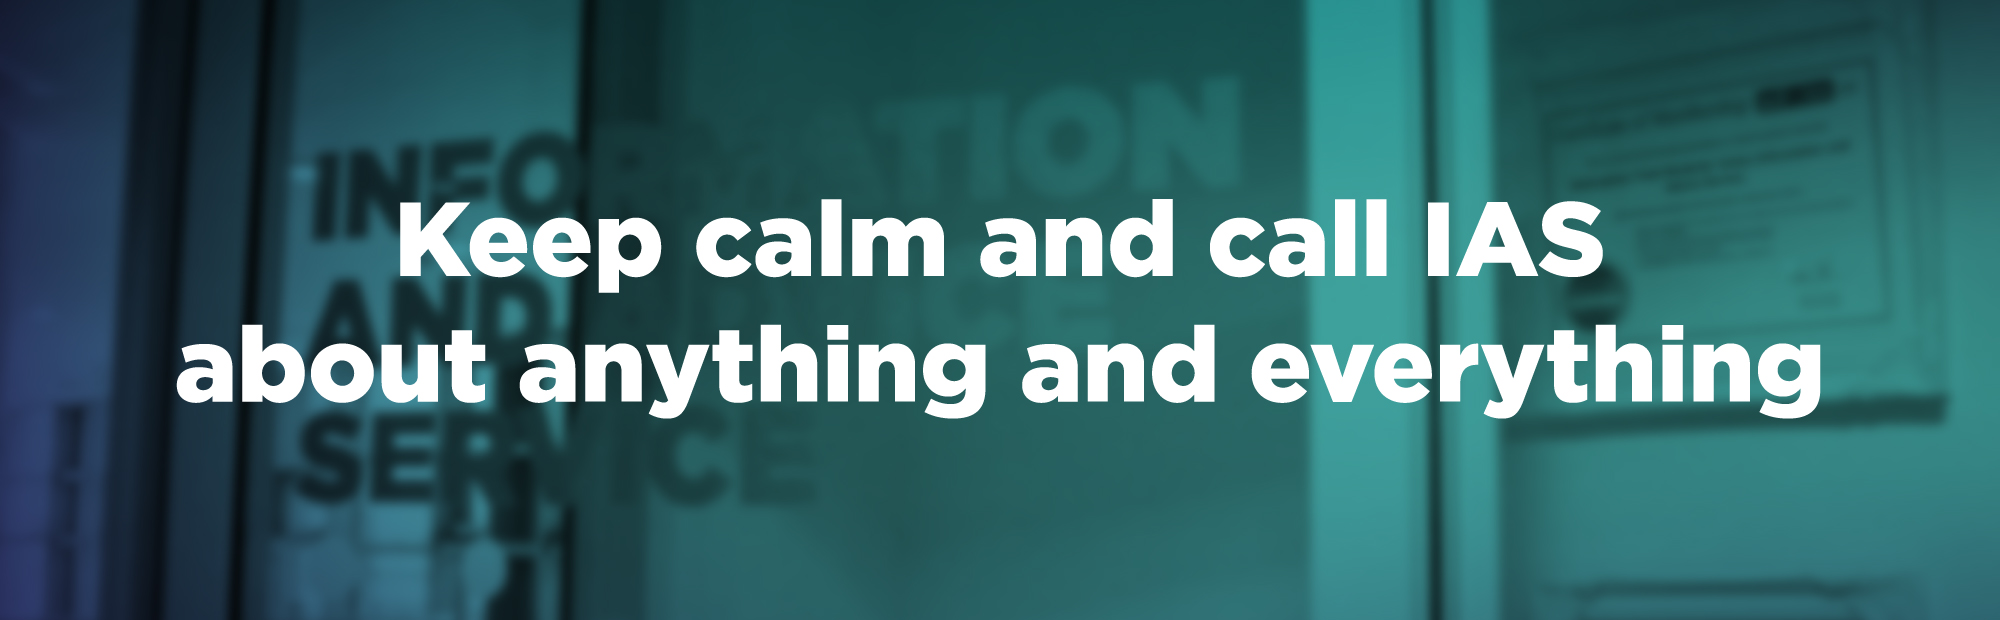 Keep calm and call IAS about anything and everything